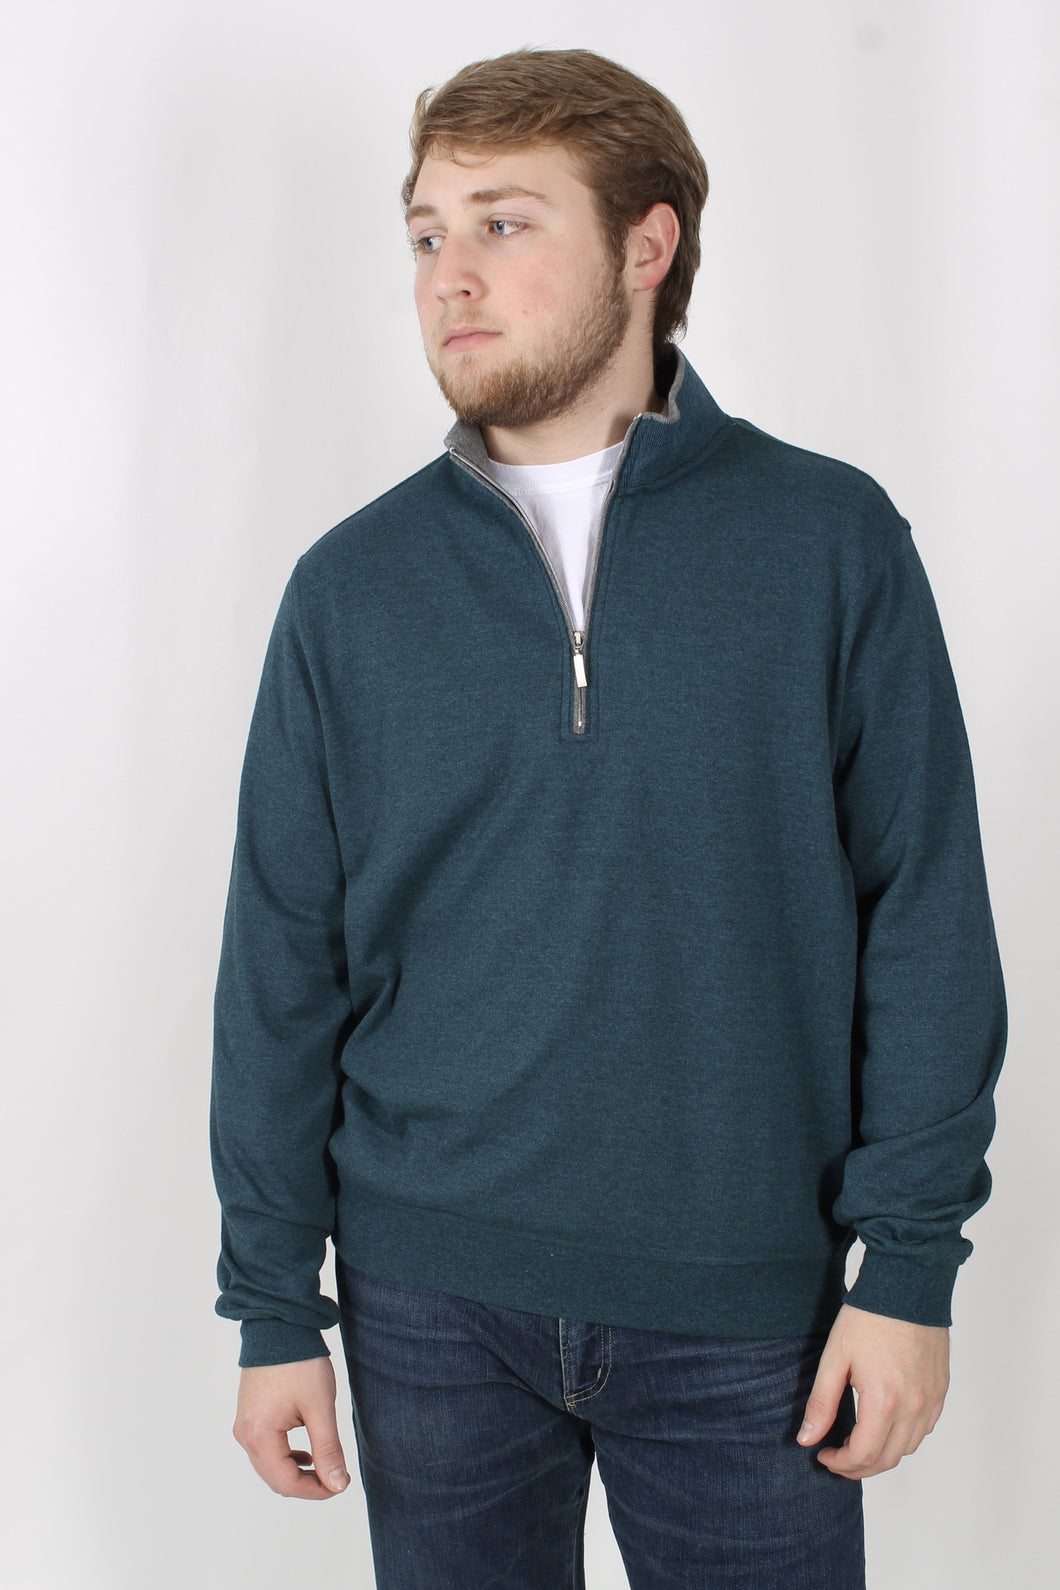 Teal Pullover- Carnoustie 1/4 Zip Pullover Front